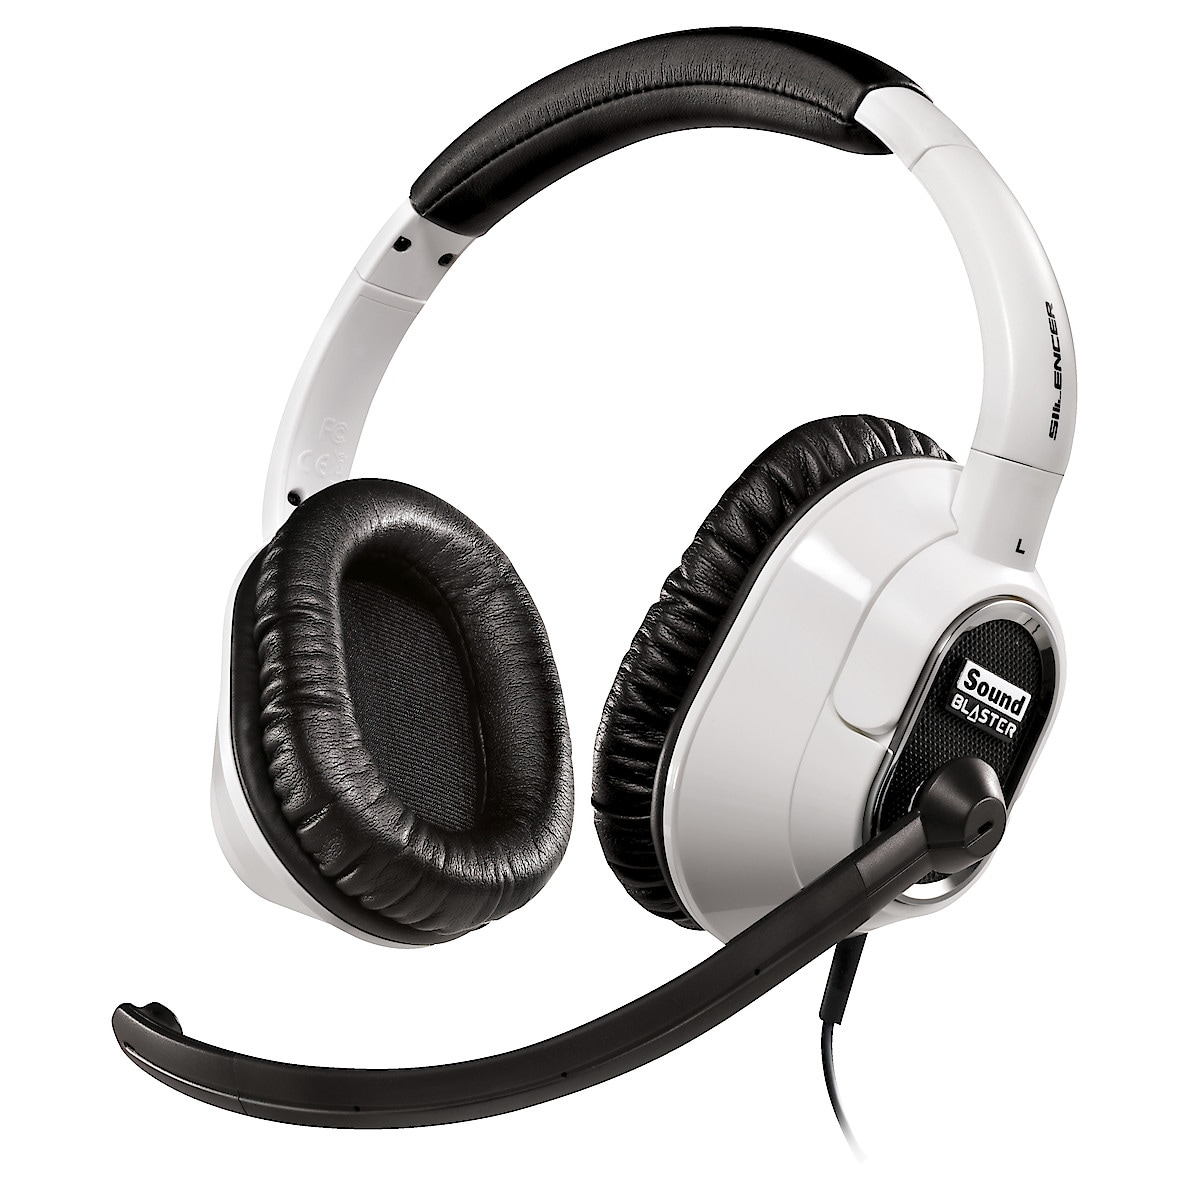 Headset, Creative Arena Gaming HS1100